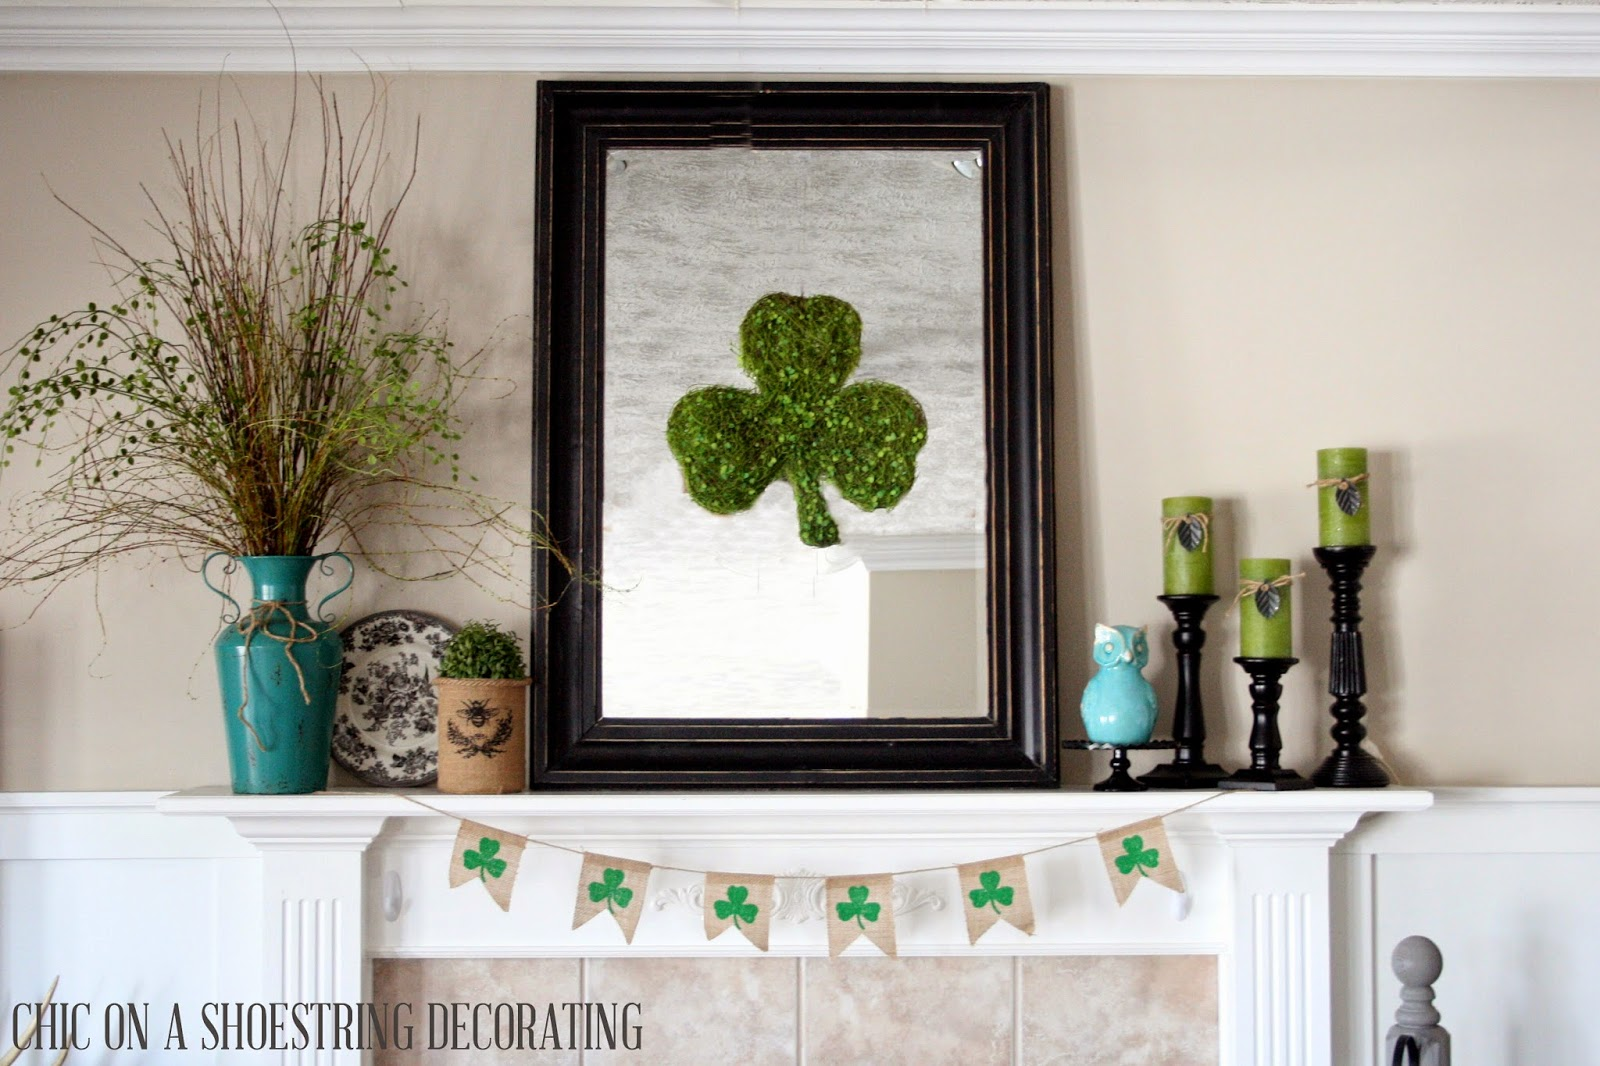 Chic on a shoestring decorating easy st patrick 39 s day decor for St patrick s day home decorations